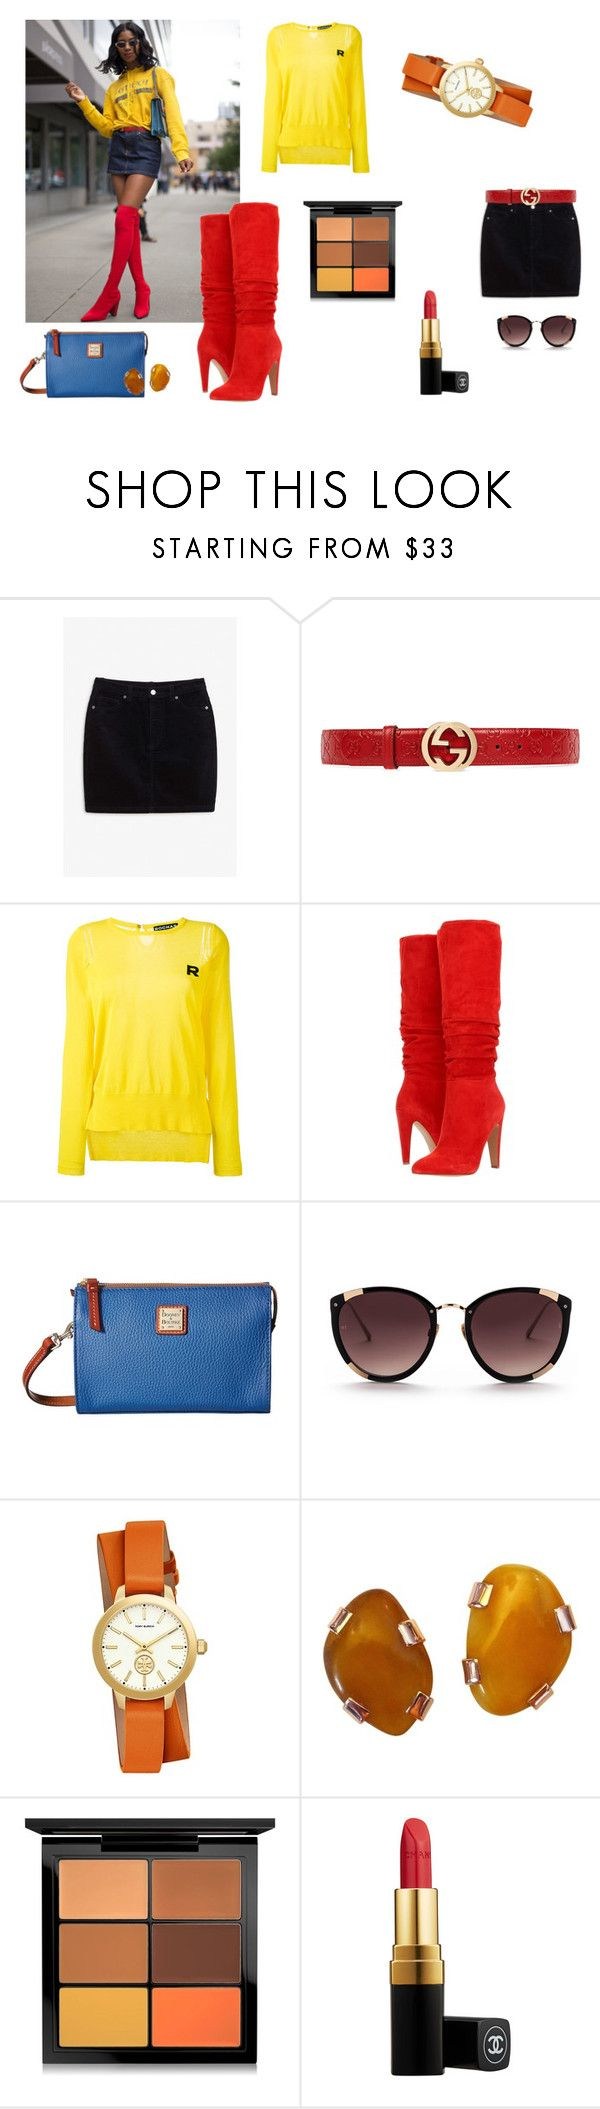 """""""Y'all Girlll"""" by elfafungian on Polyvore featuring Monki, Gucci, Rochas, Steve Madden, Dooney & Bourke, Rebecca Taylor, Tory Burch, MAC Cosmetics and Chanel"""